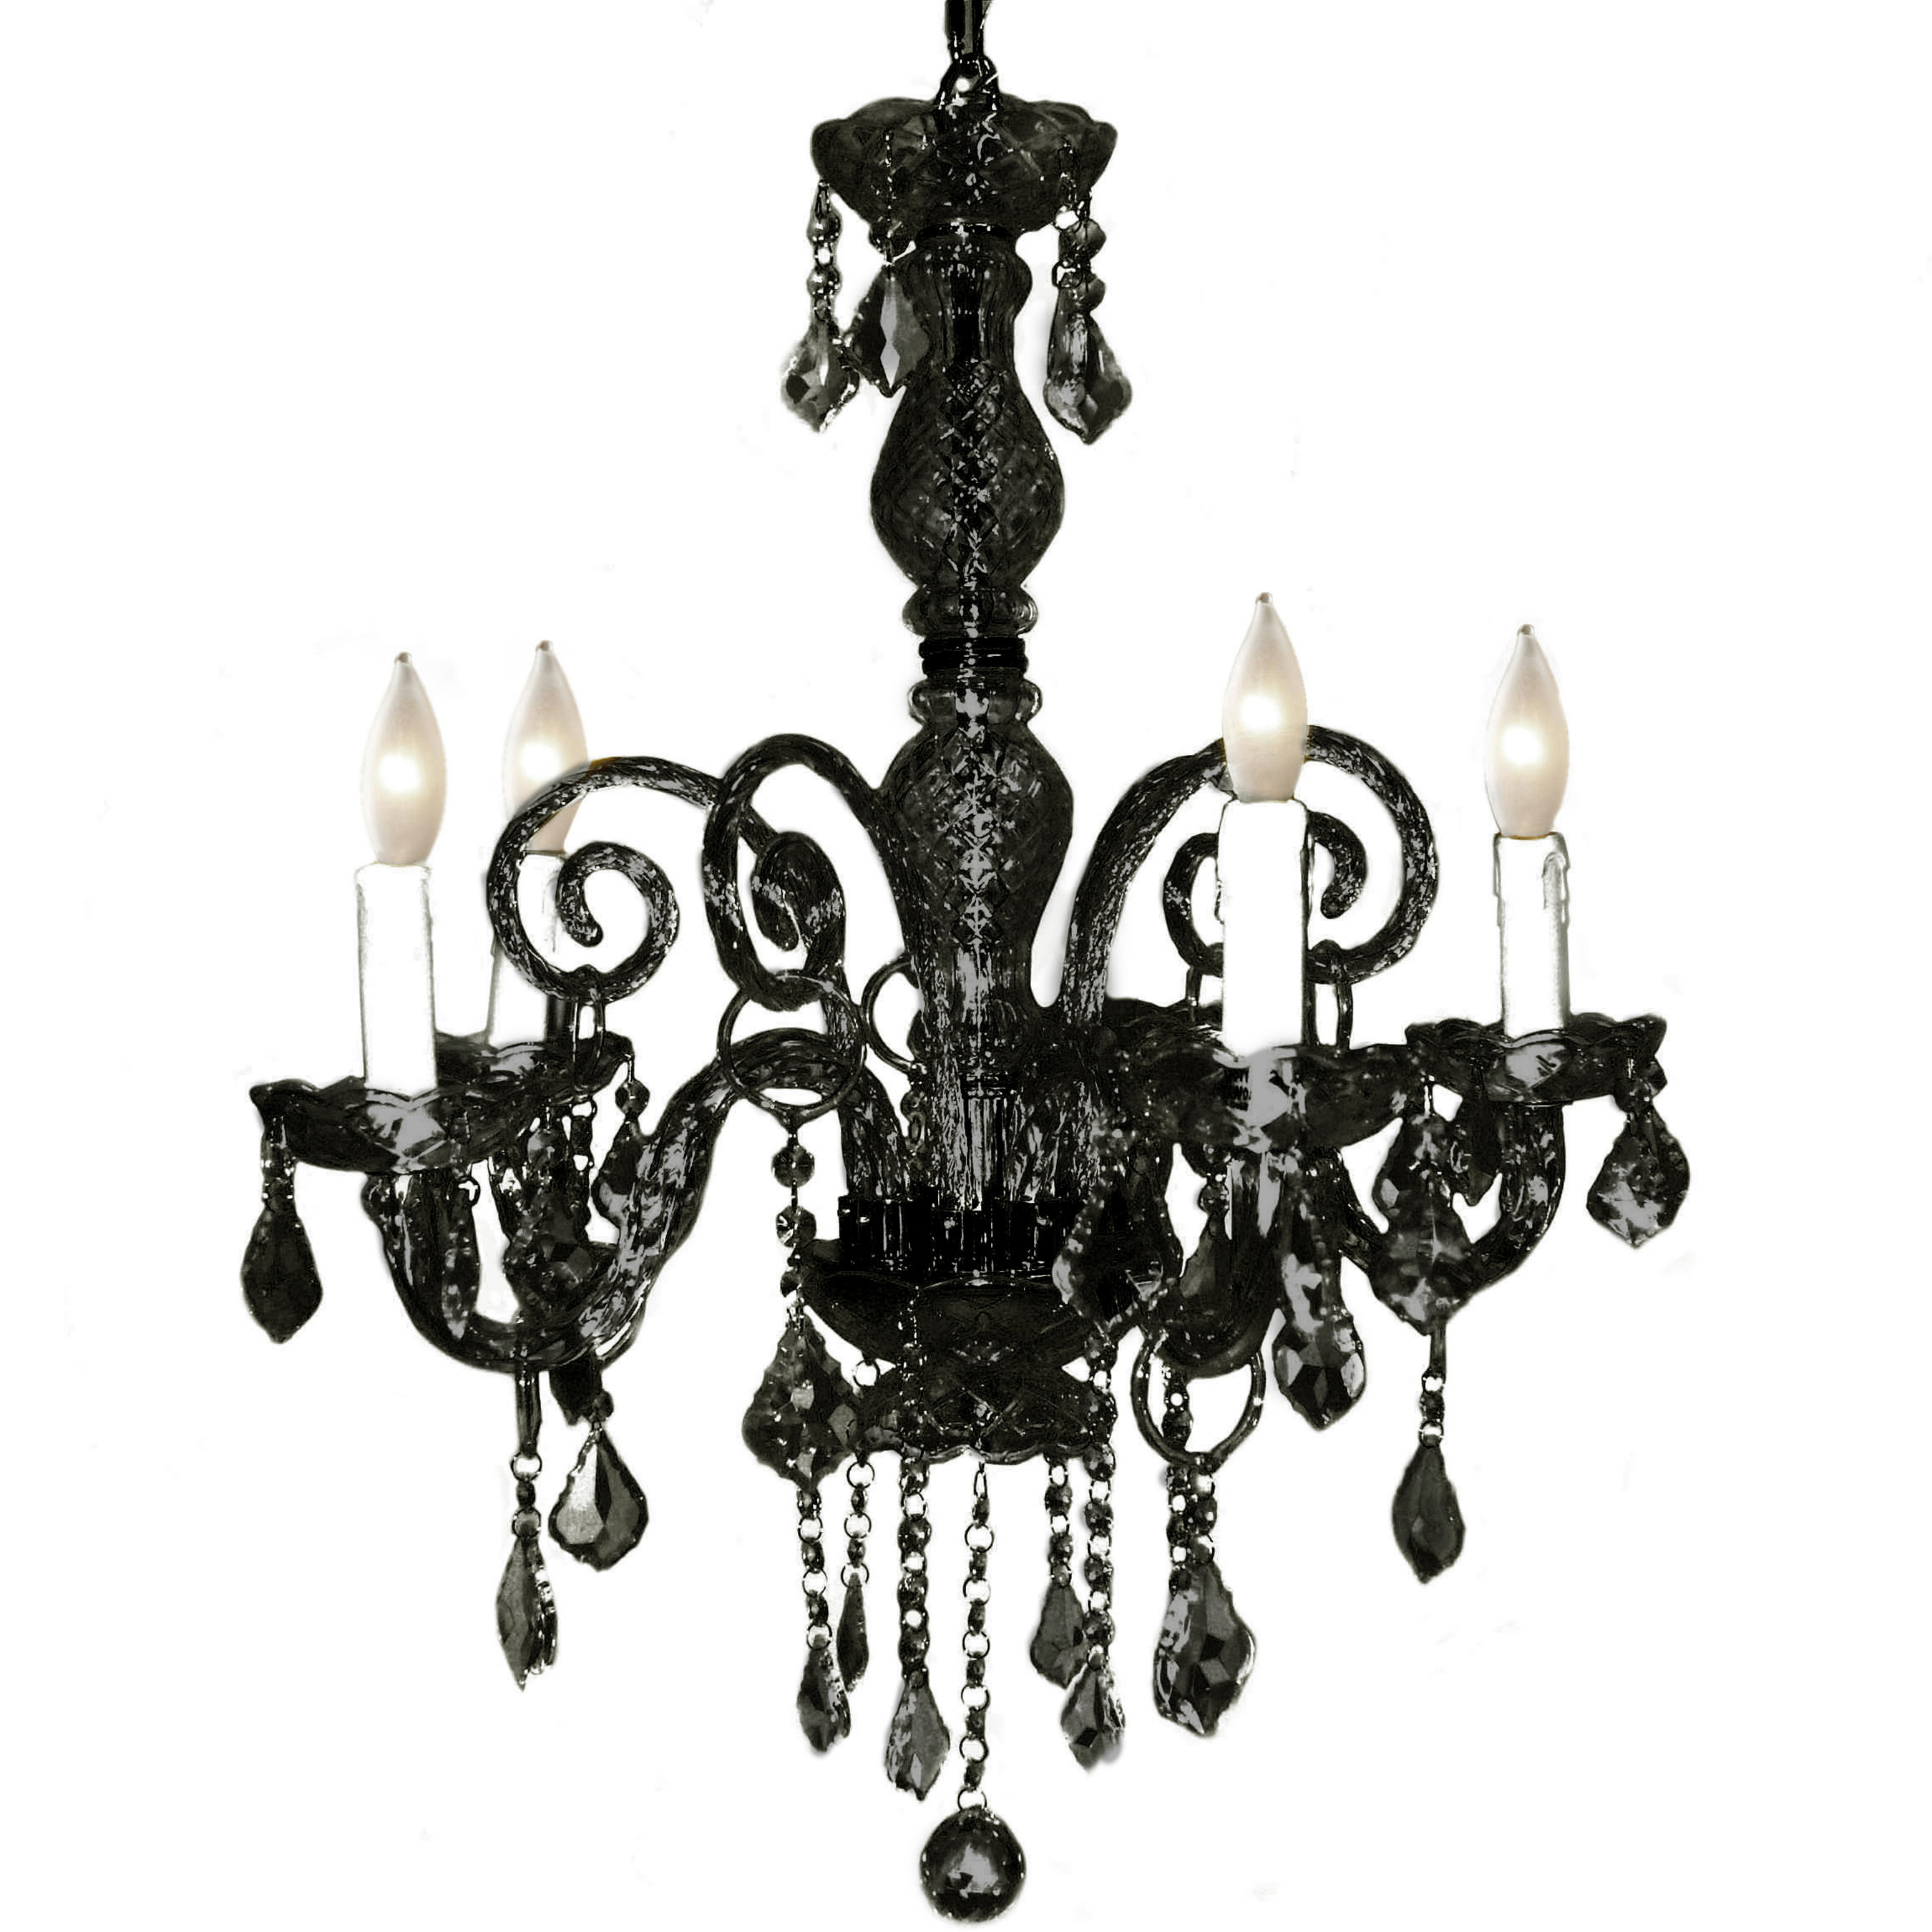 Aldora 4 Light Candle Style Chandeliers Throughout Latest Krystal 5 Light Candle Style Chandelier (View 13 of 20)